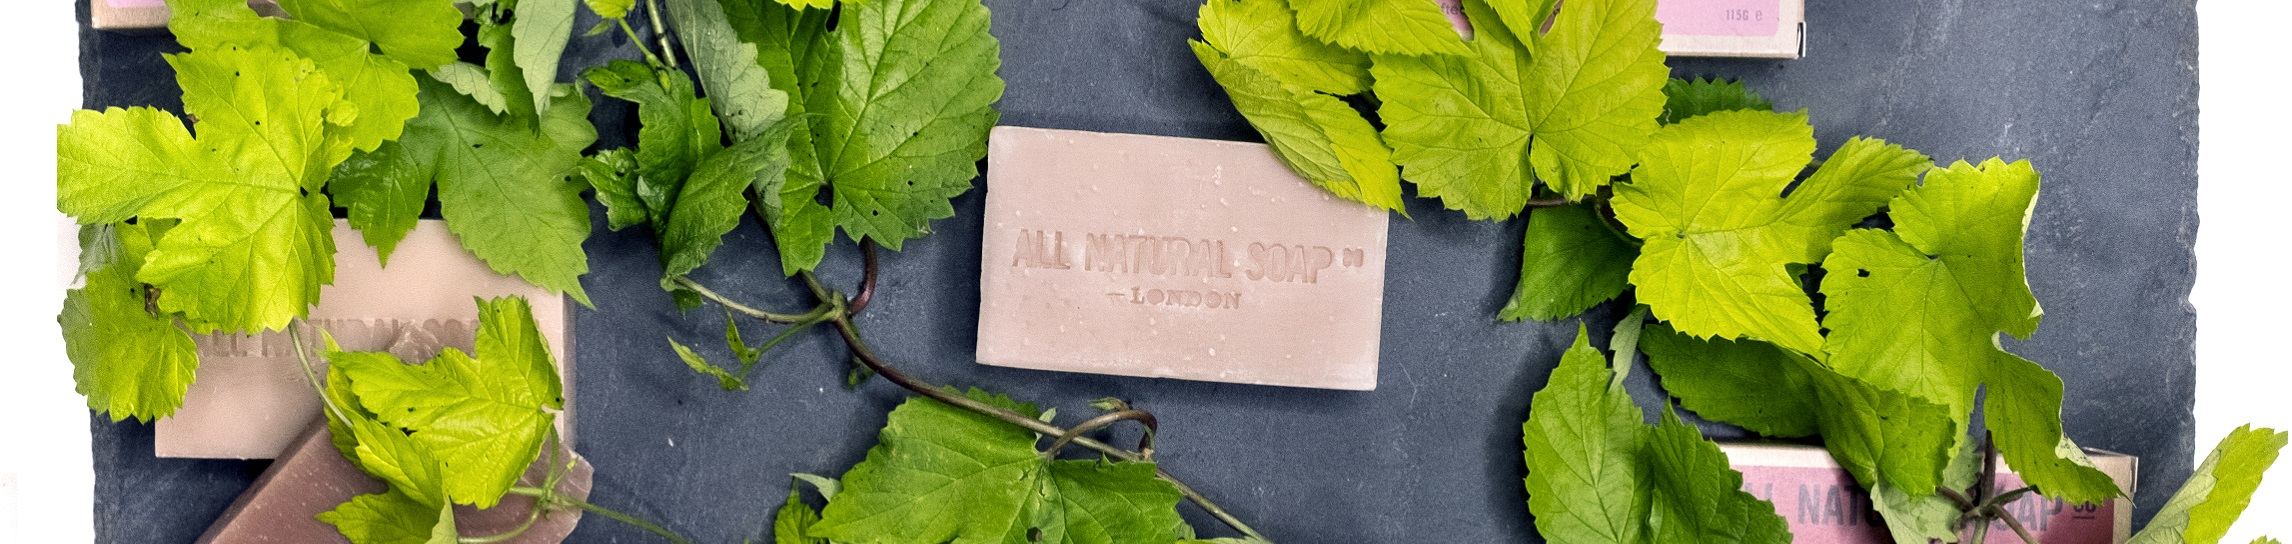 Scents-direct-from-nature_ALL-NATURAL-SOAP-Co